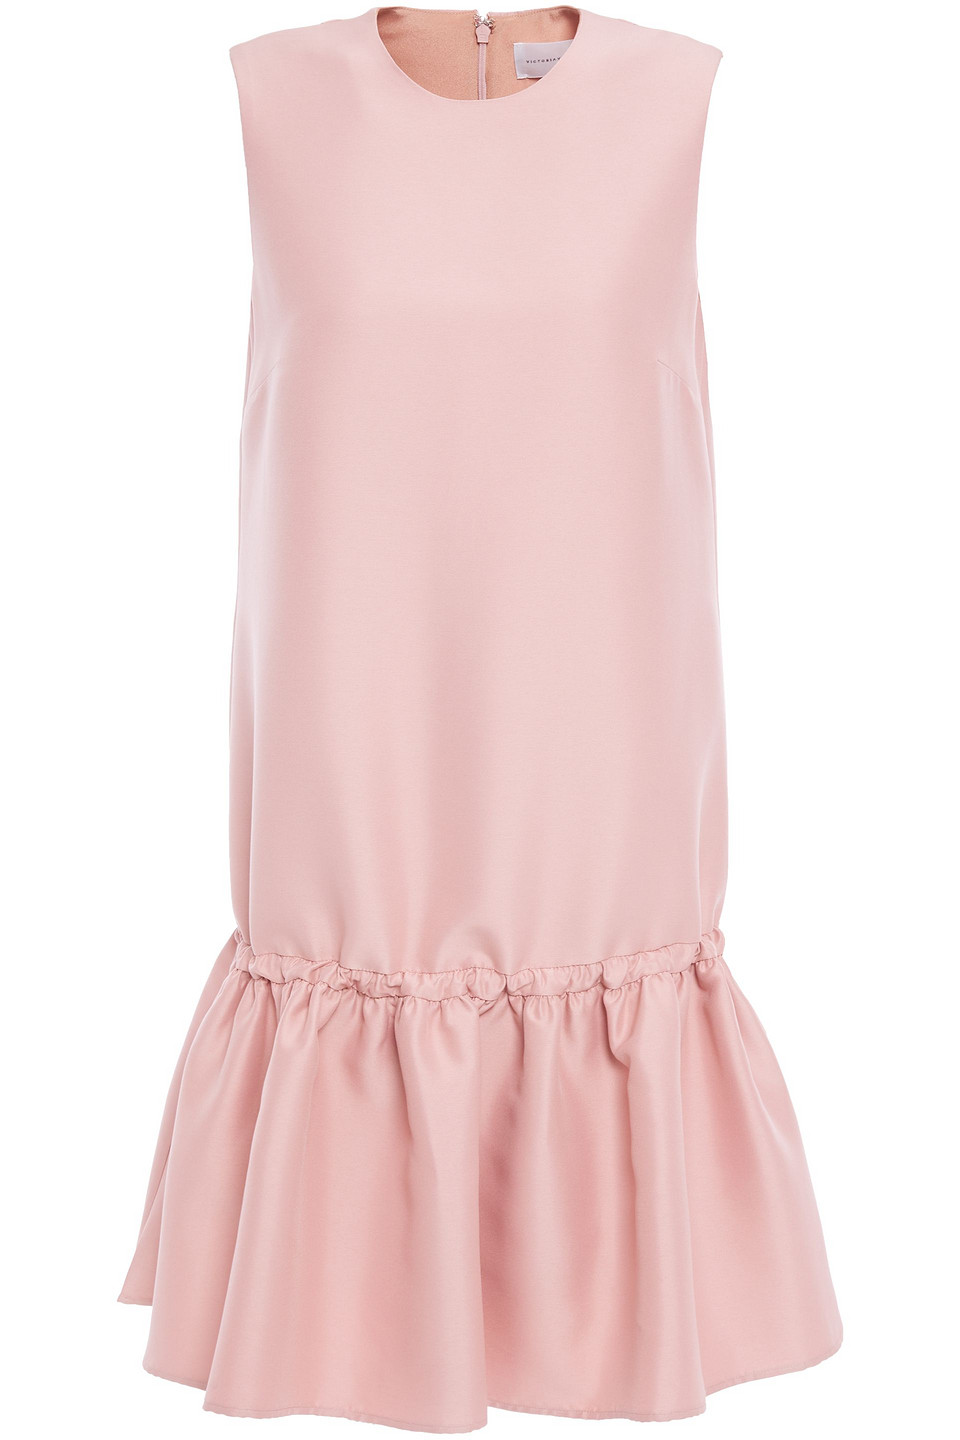 Victoria By Victoria Beckham | Victoria, Victoria Beckham Woman Fluted Faille Mini Dress Antique Rose | Clouty